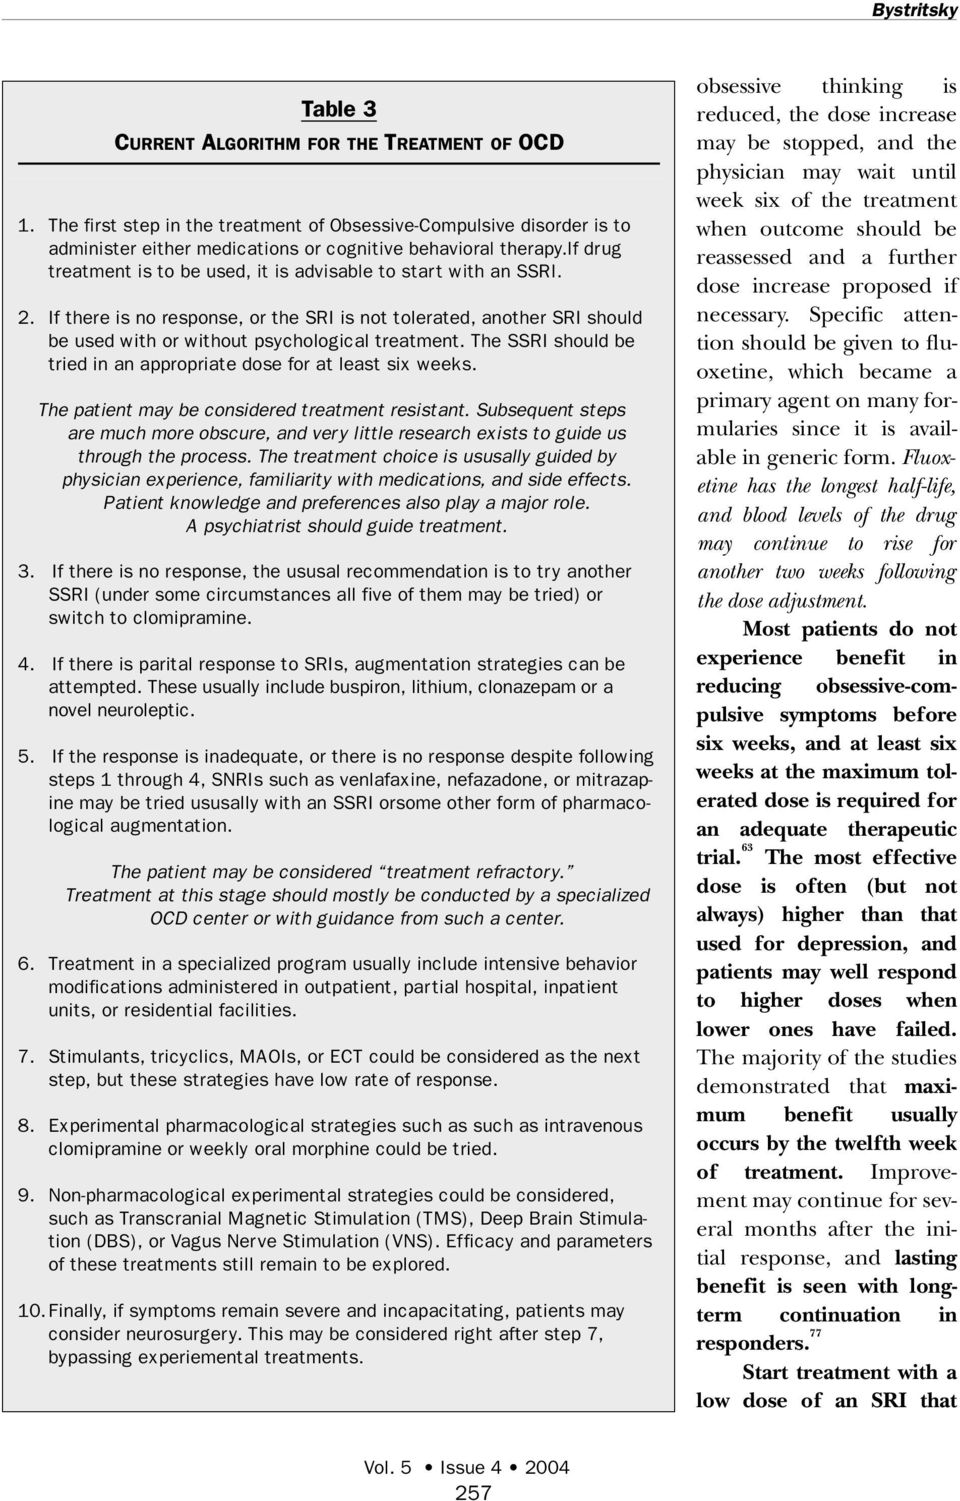 The SSRI should be tried in an appropriate dose for at least six weeks. The patient may be considered treatment resistant.